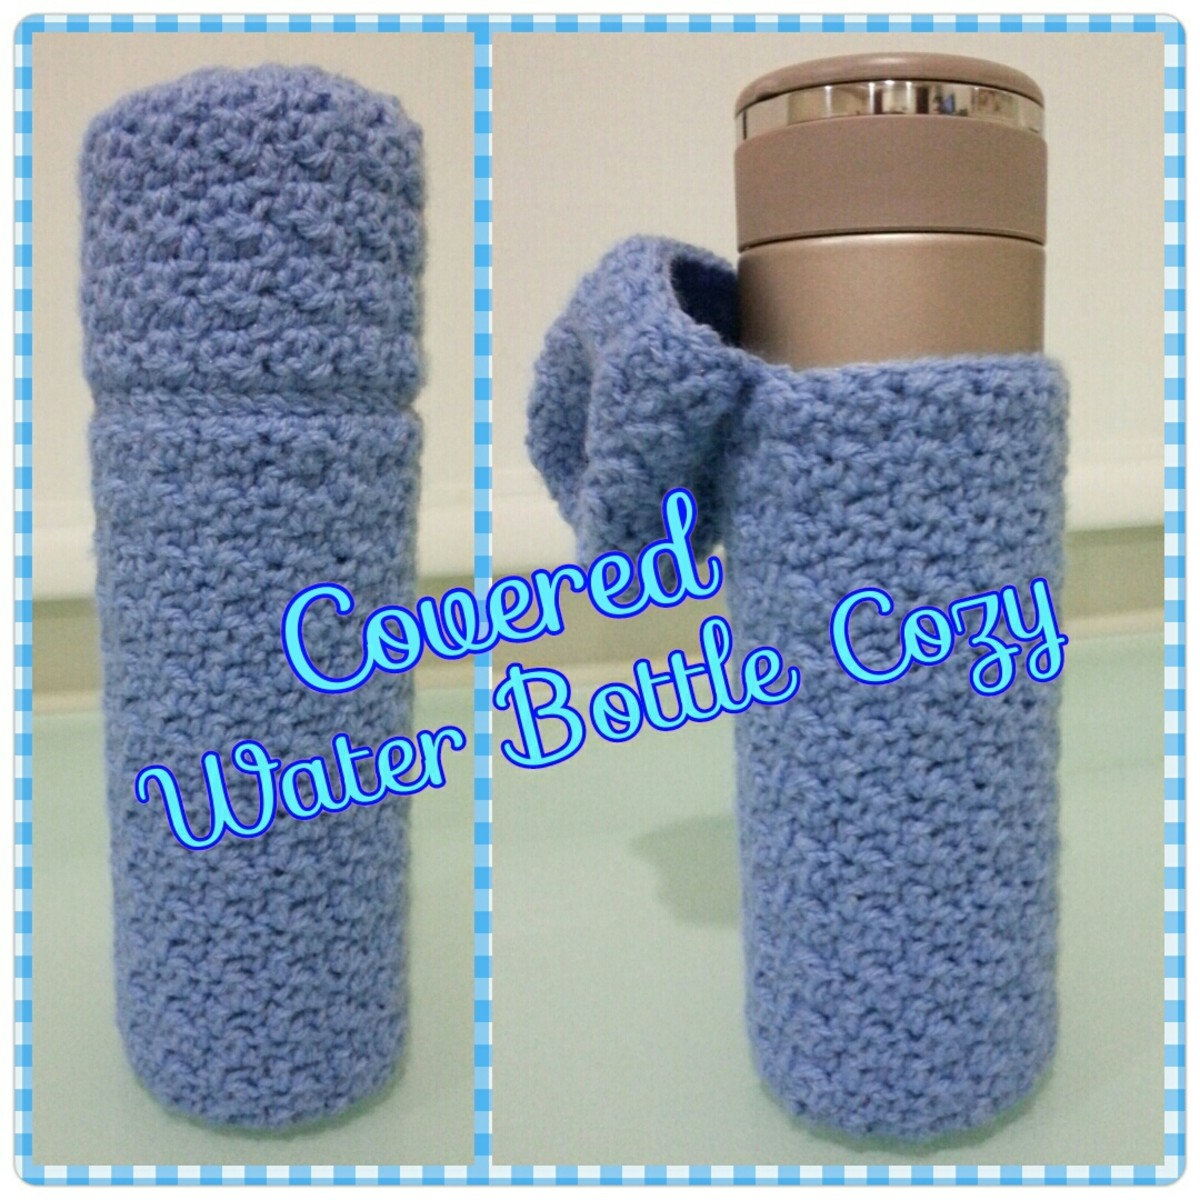 How to Crochet a Covered Water Bottle Cozy: Free Crochet Pattern ...